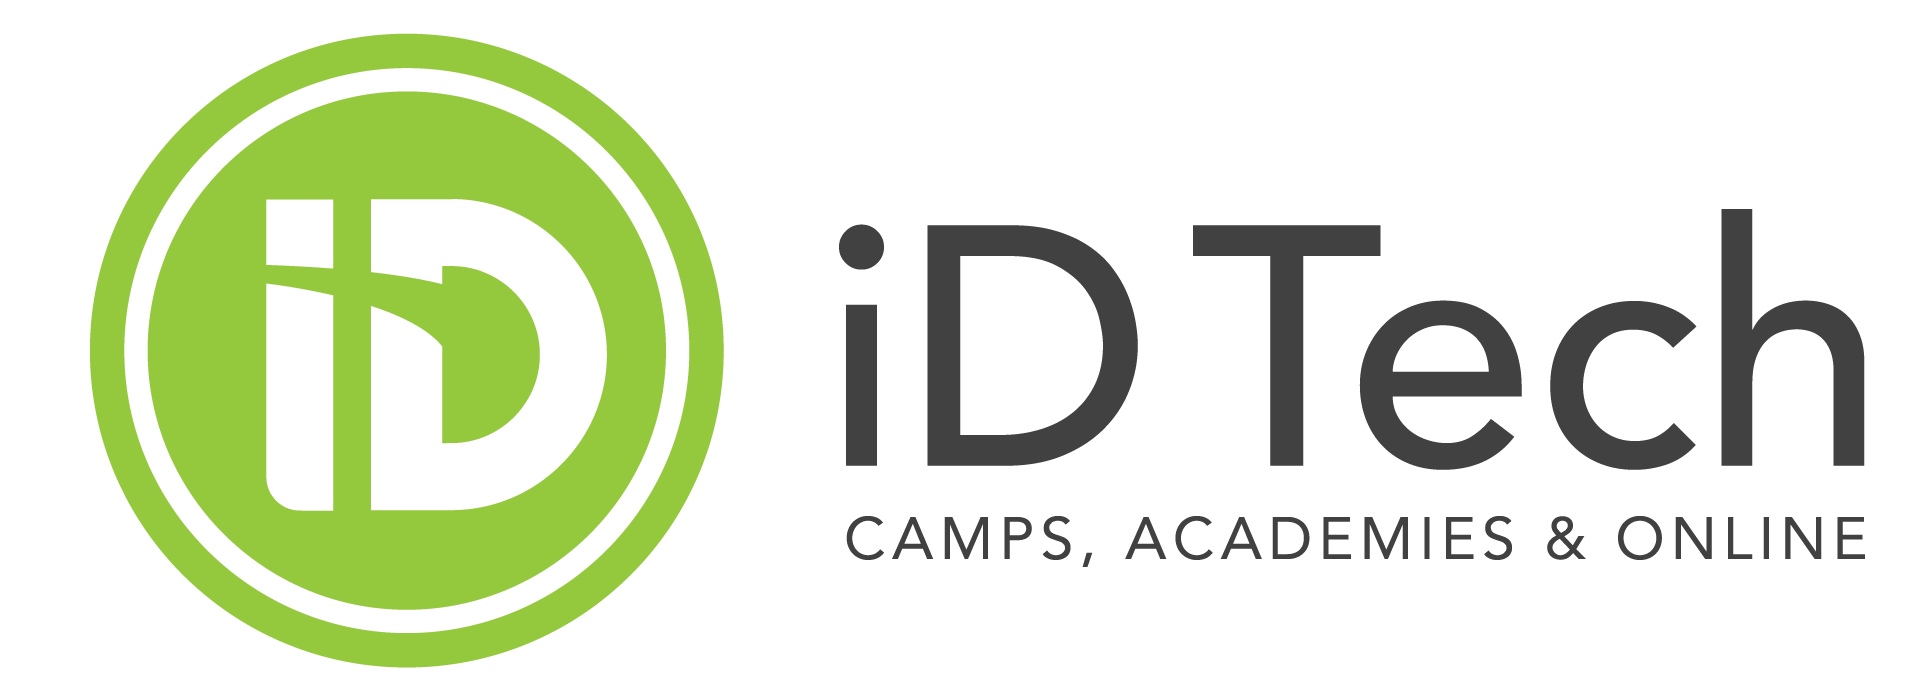 iD Tech - Camps, Academies & Online - Trans Background-05